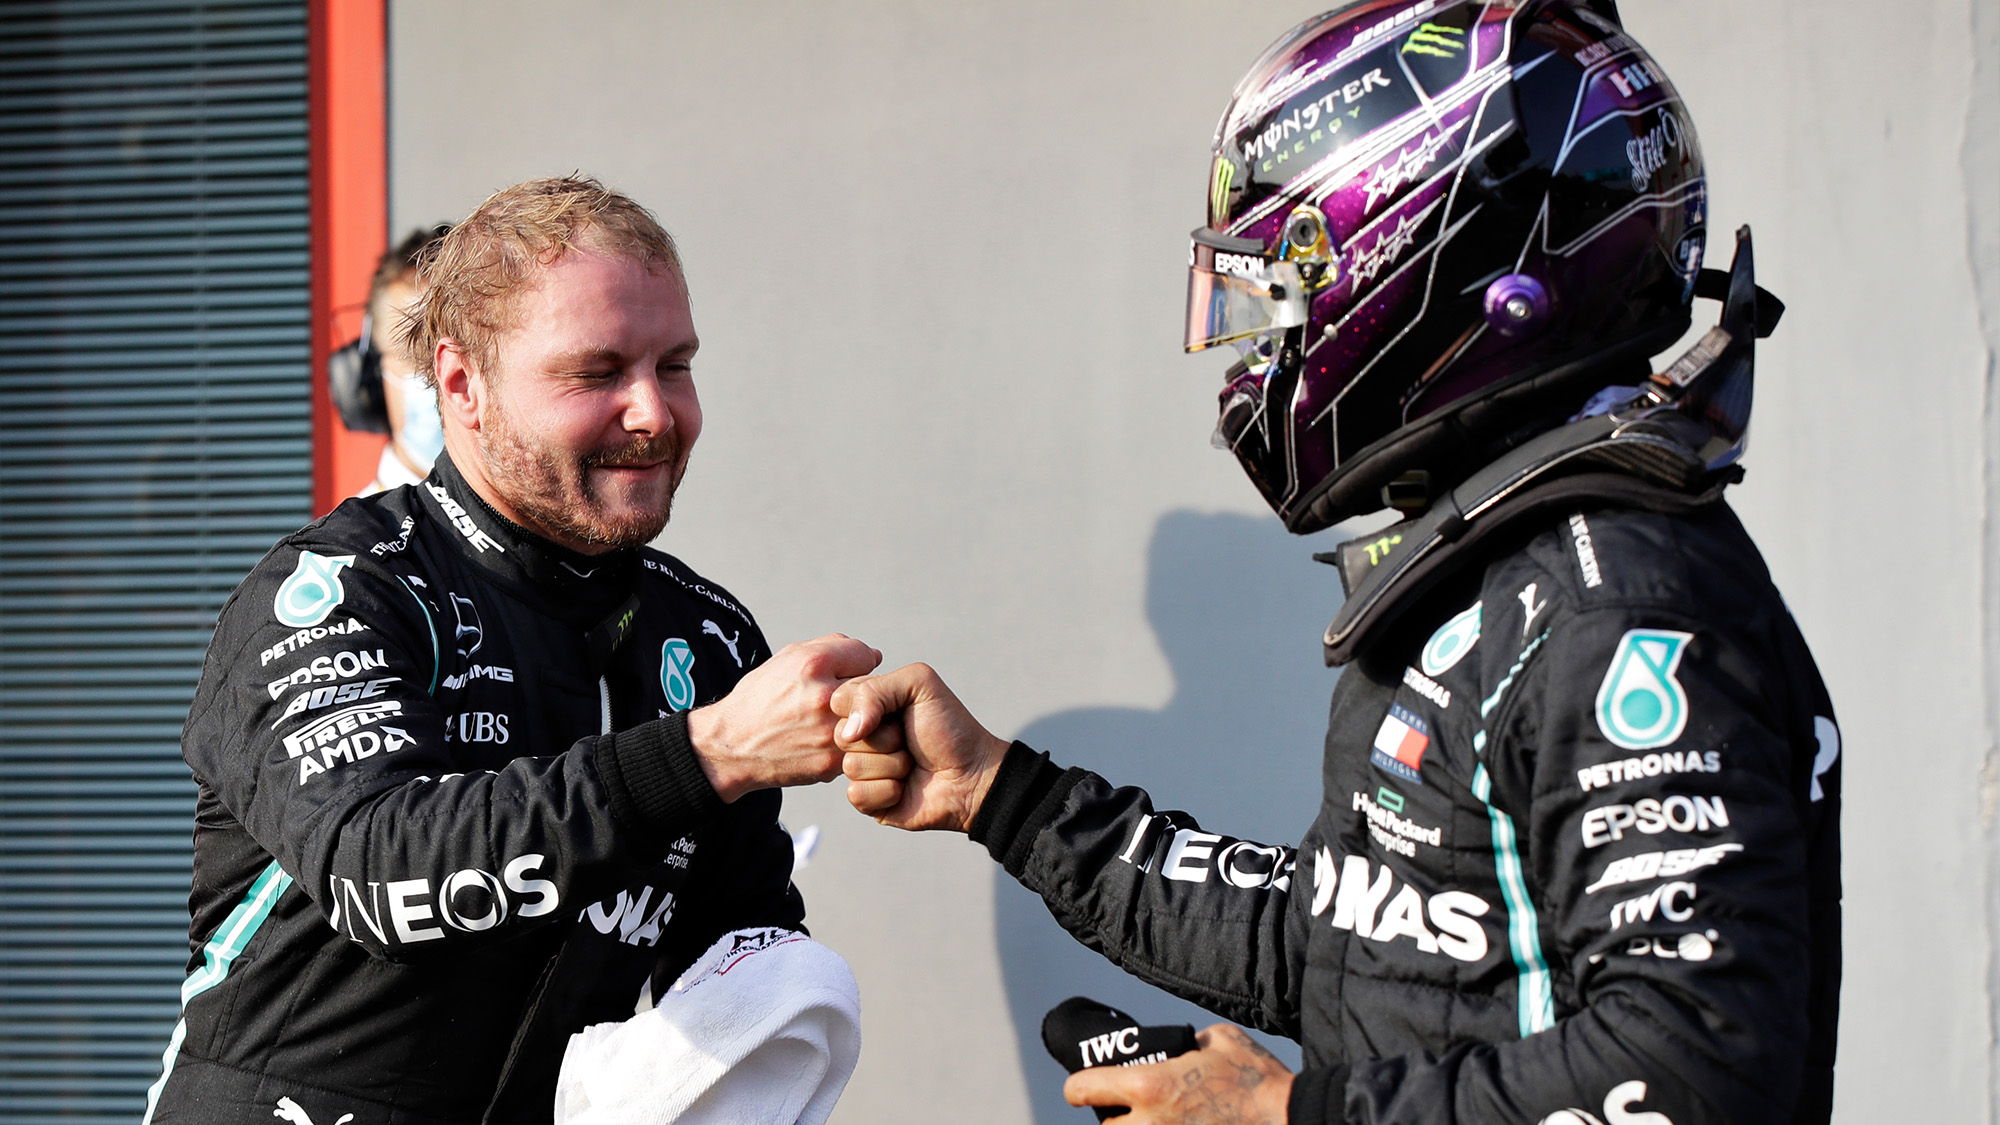 Valtteri Bottas and Lewis Hamilton bump fists at imola after qualifying for the 2020 F1 Emilia Romagna Grand Prix